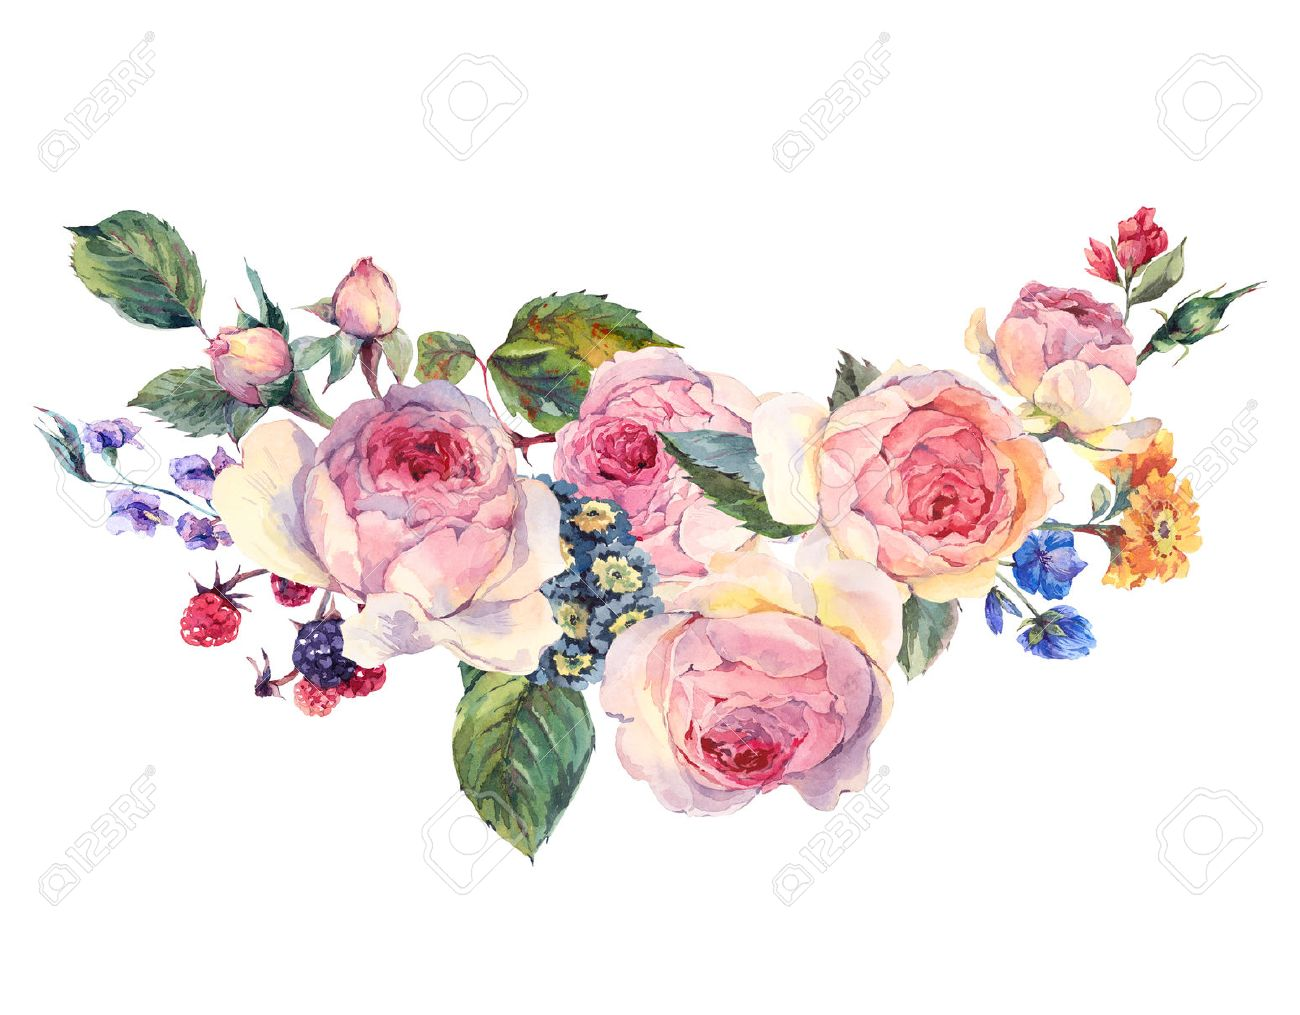 Classical vintage floral greeting card, watercolor bouquet of English roses and wildflowers, botanical natural watercolor illustration on white Background - 59797461